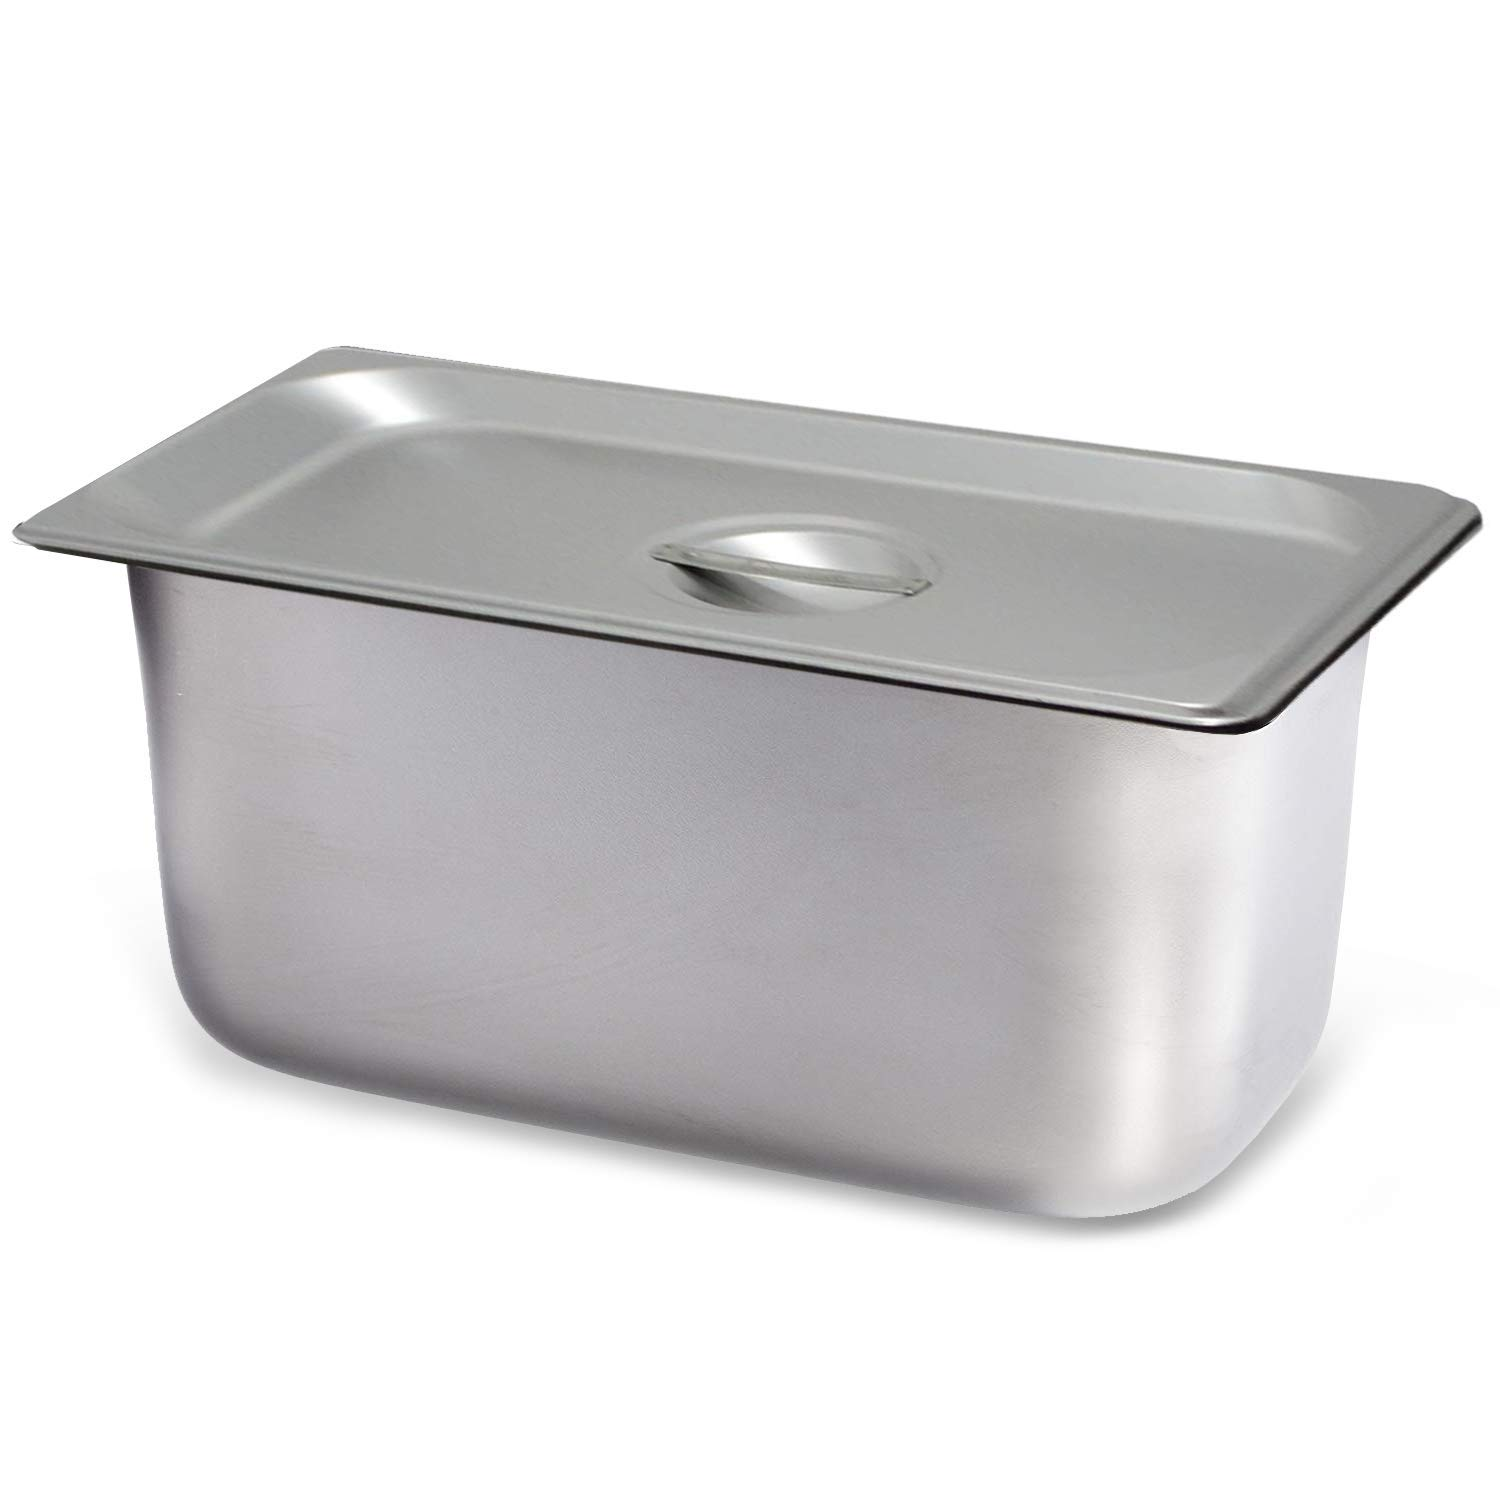 "Steam Table Pan Third Size with Cover, Hotel Pan is 6"" Deep, Made from 25 Gauge Stainless Steel, NSF Listed."